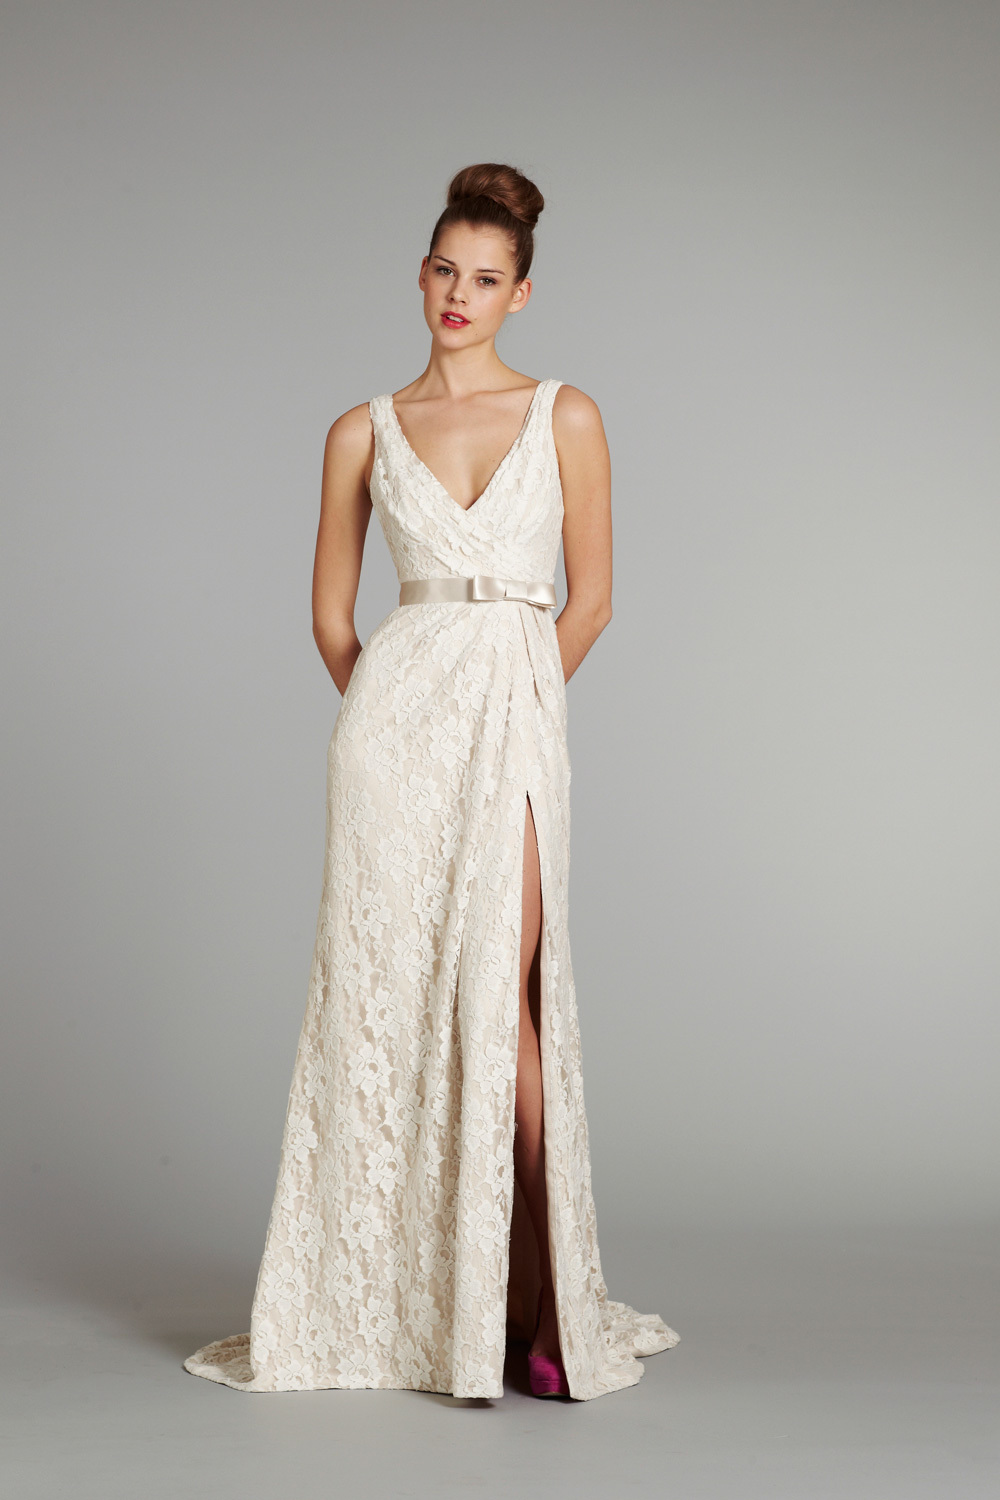 Gown wedding dress jlm hayley paige blush fall 2012 saffron front bridal gown wedding dress jlm hayley paige blush fall 2012 saffron front ombrellifo Image collections